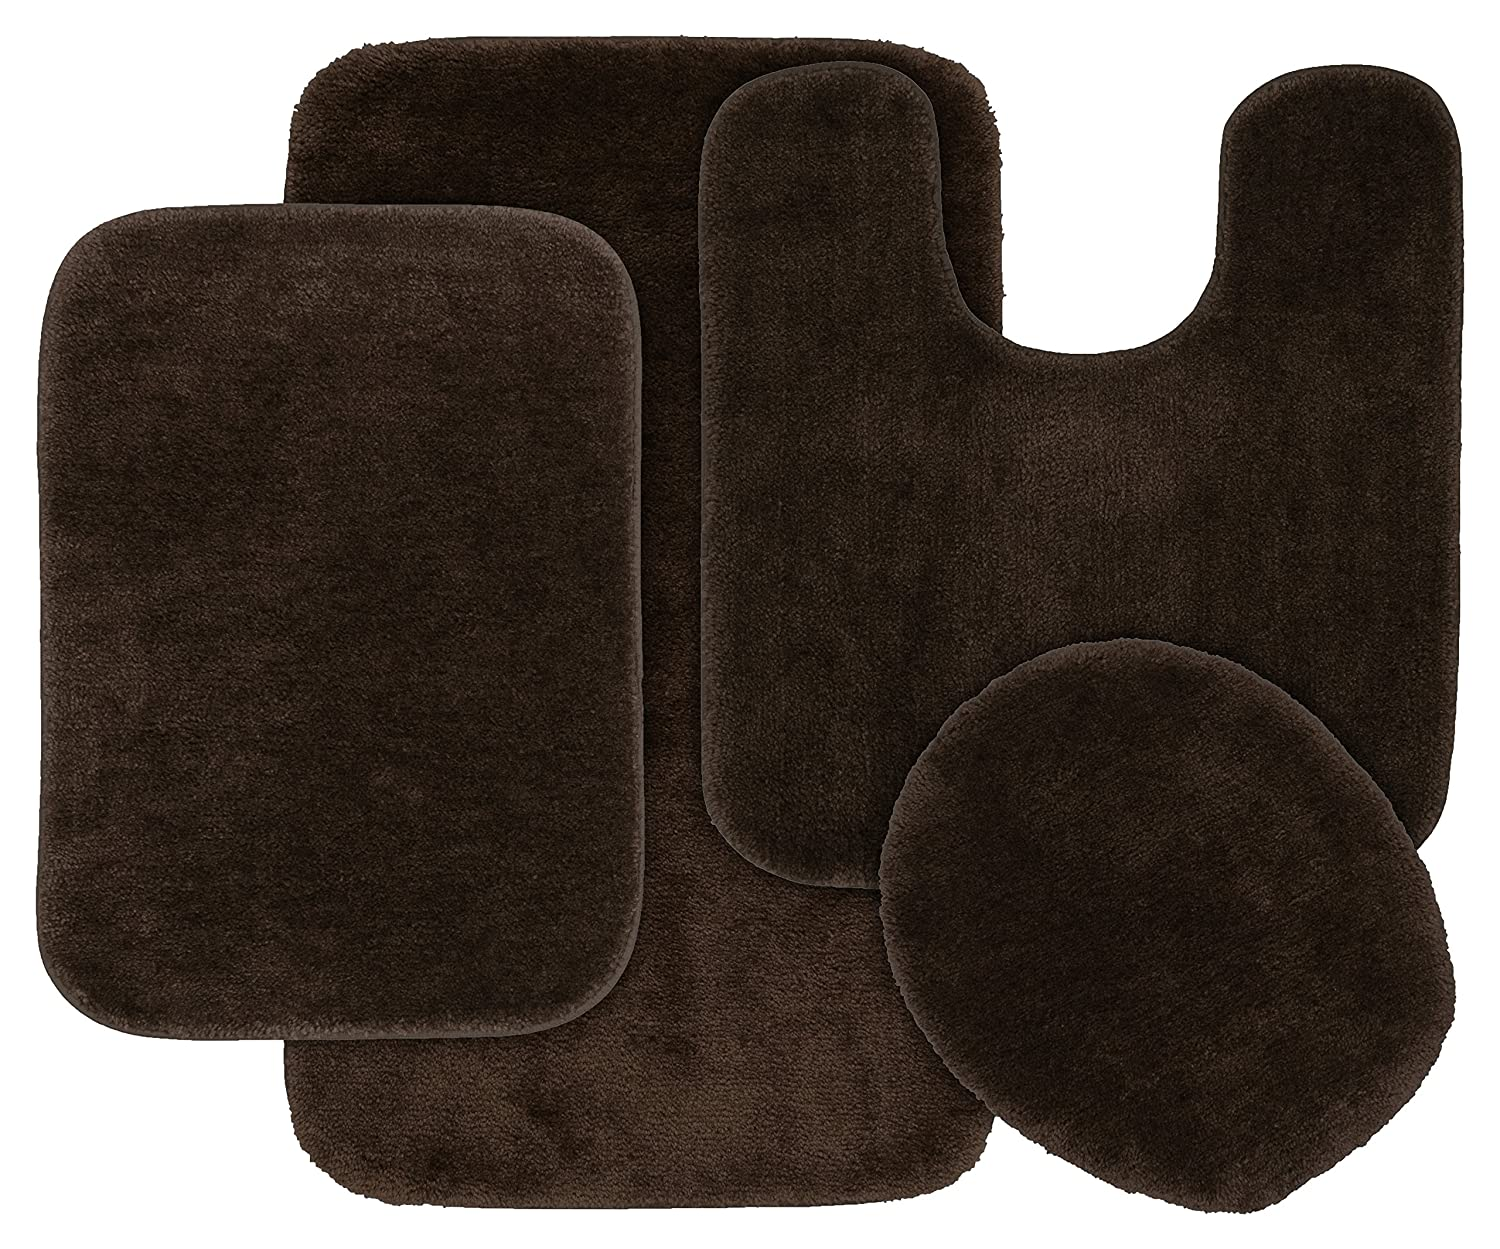 Garland Rug BA010W4P15J5 Traditional Bath Rug Set, 4-Piece, Chocolate